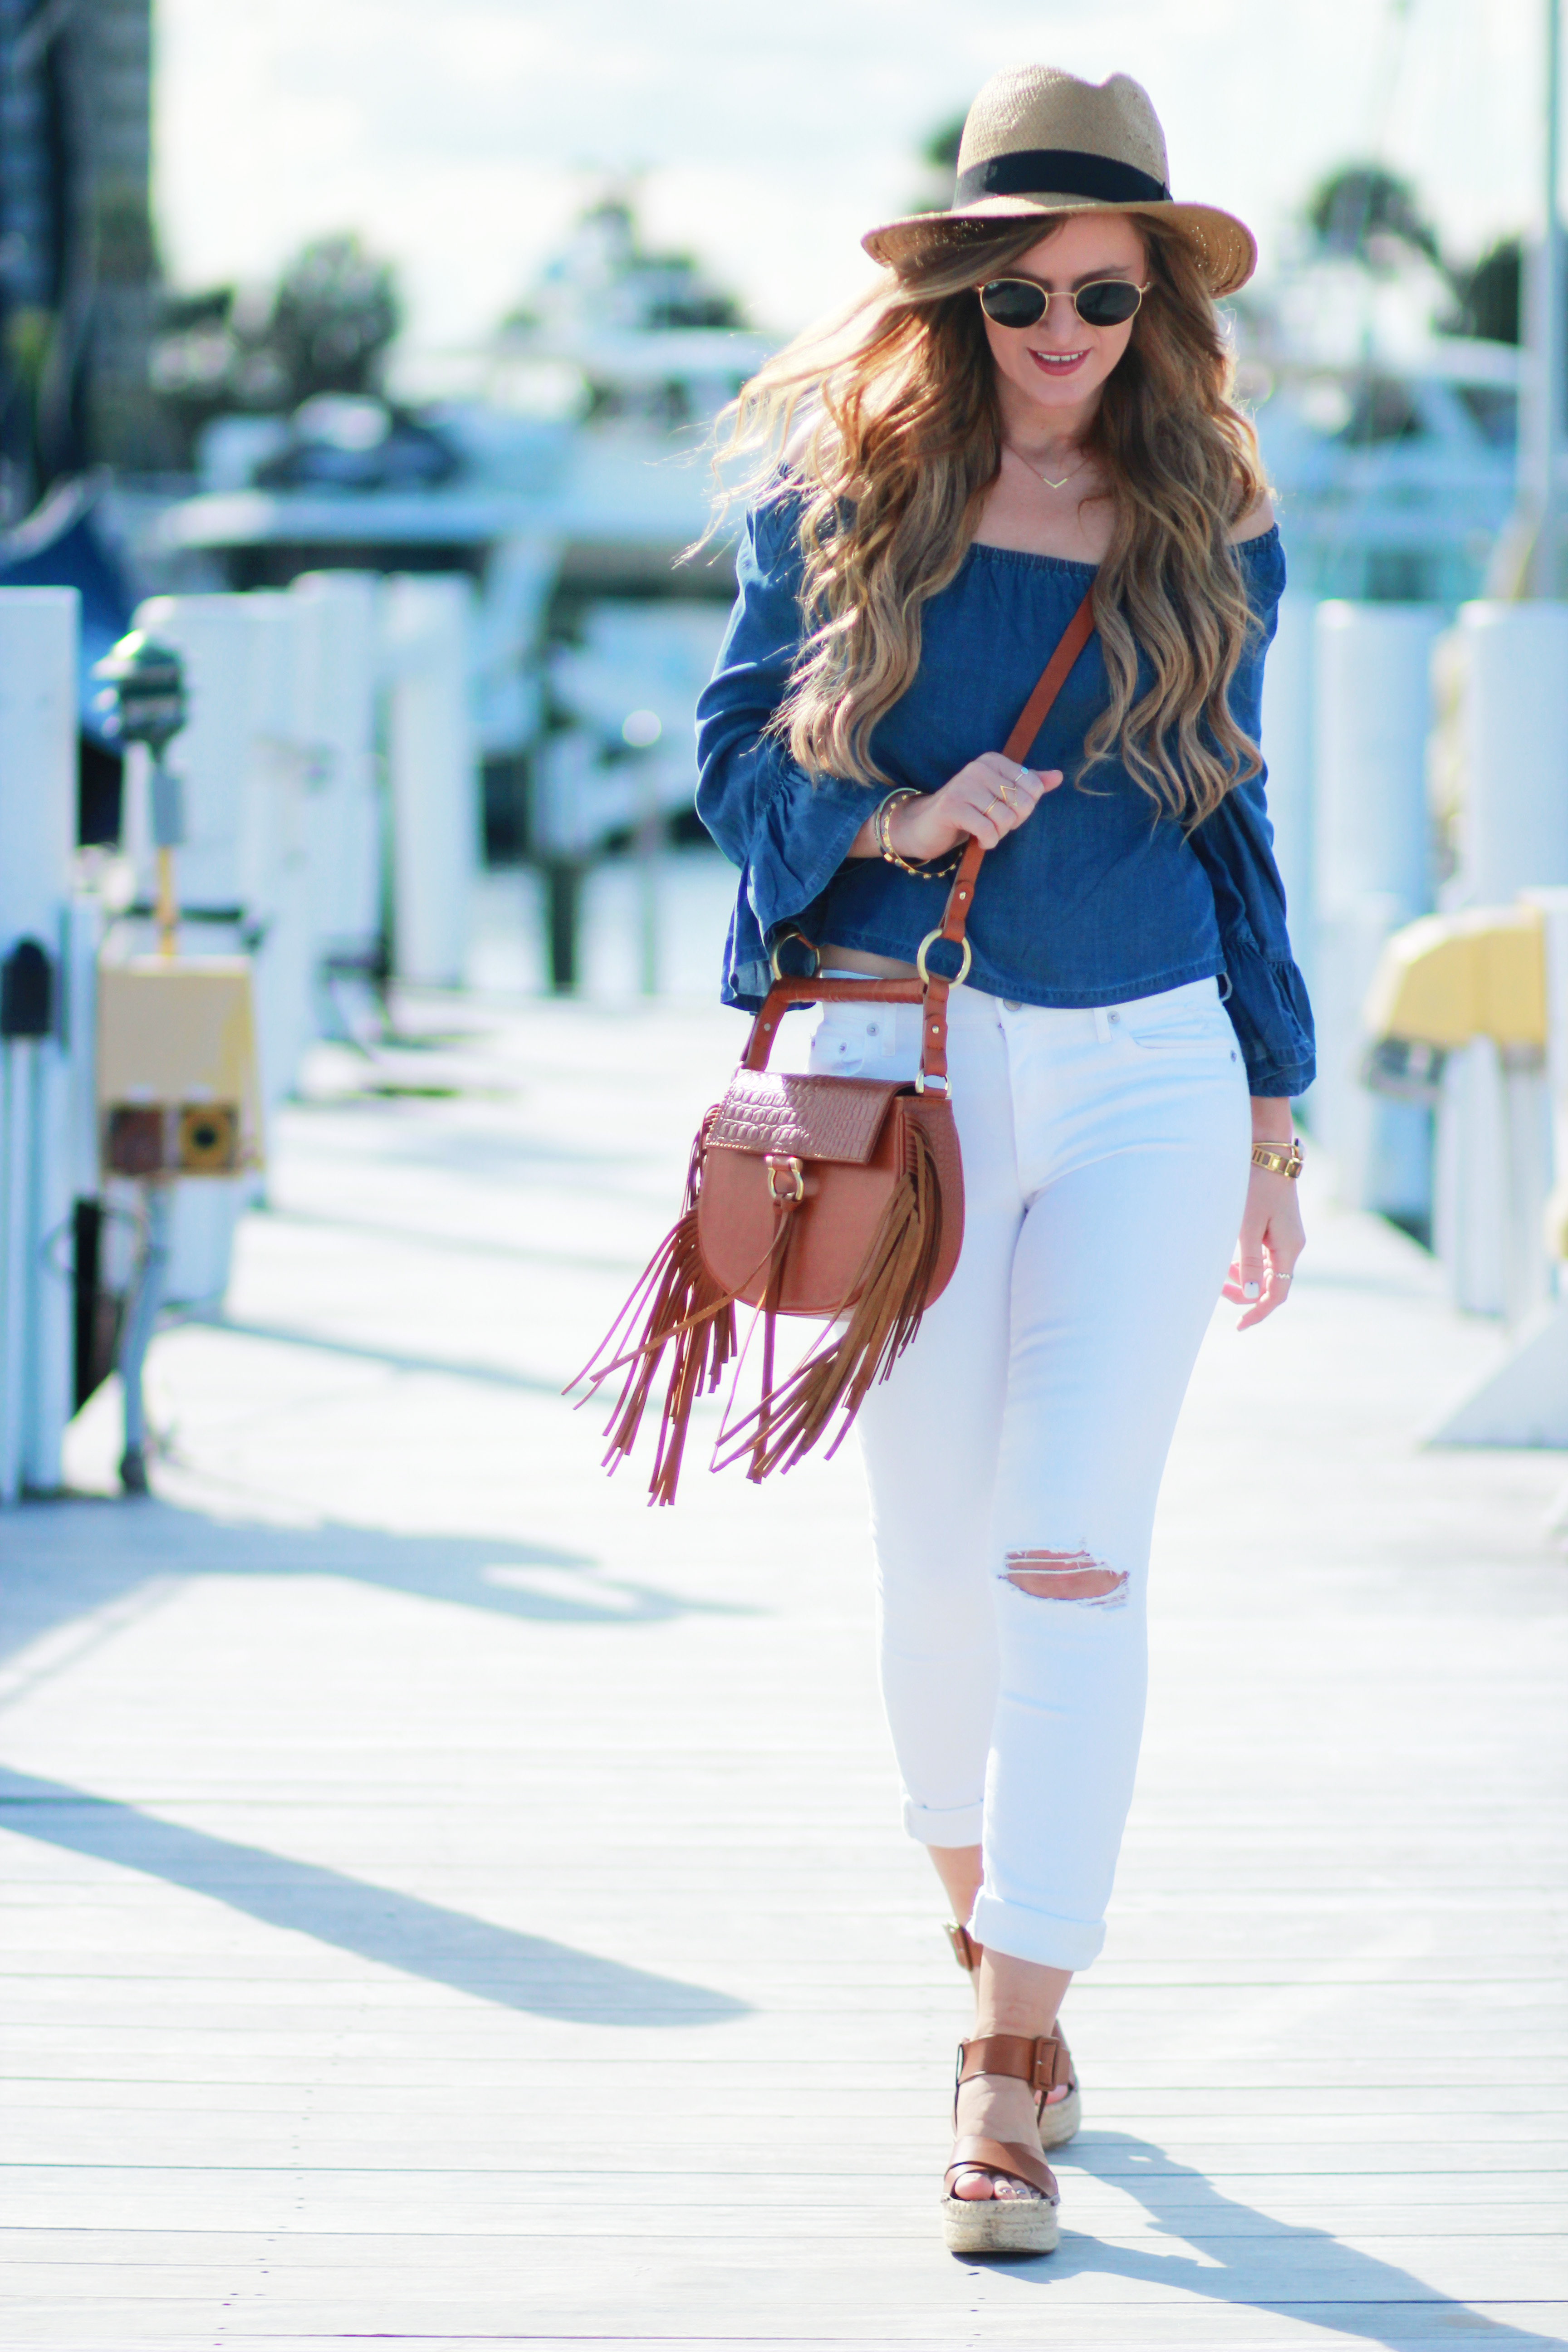 cc80920fce9 Orlando Florida fashion blog styles H&M chambray off the shoulder top,  distressed white jeans,